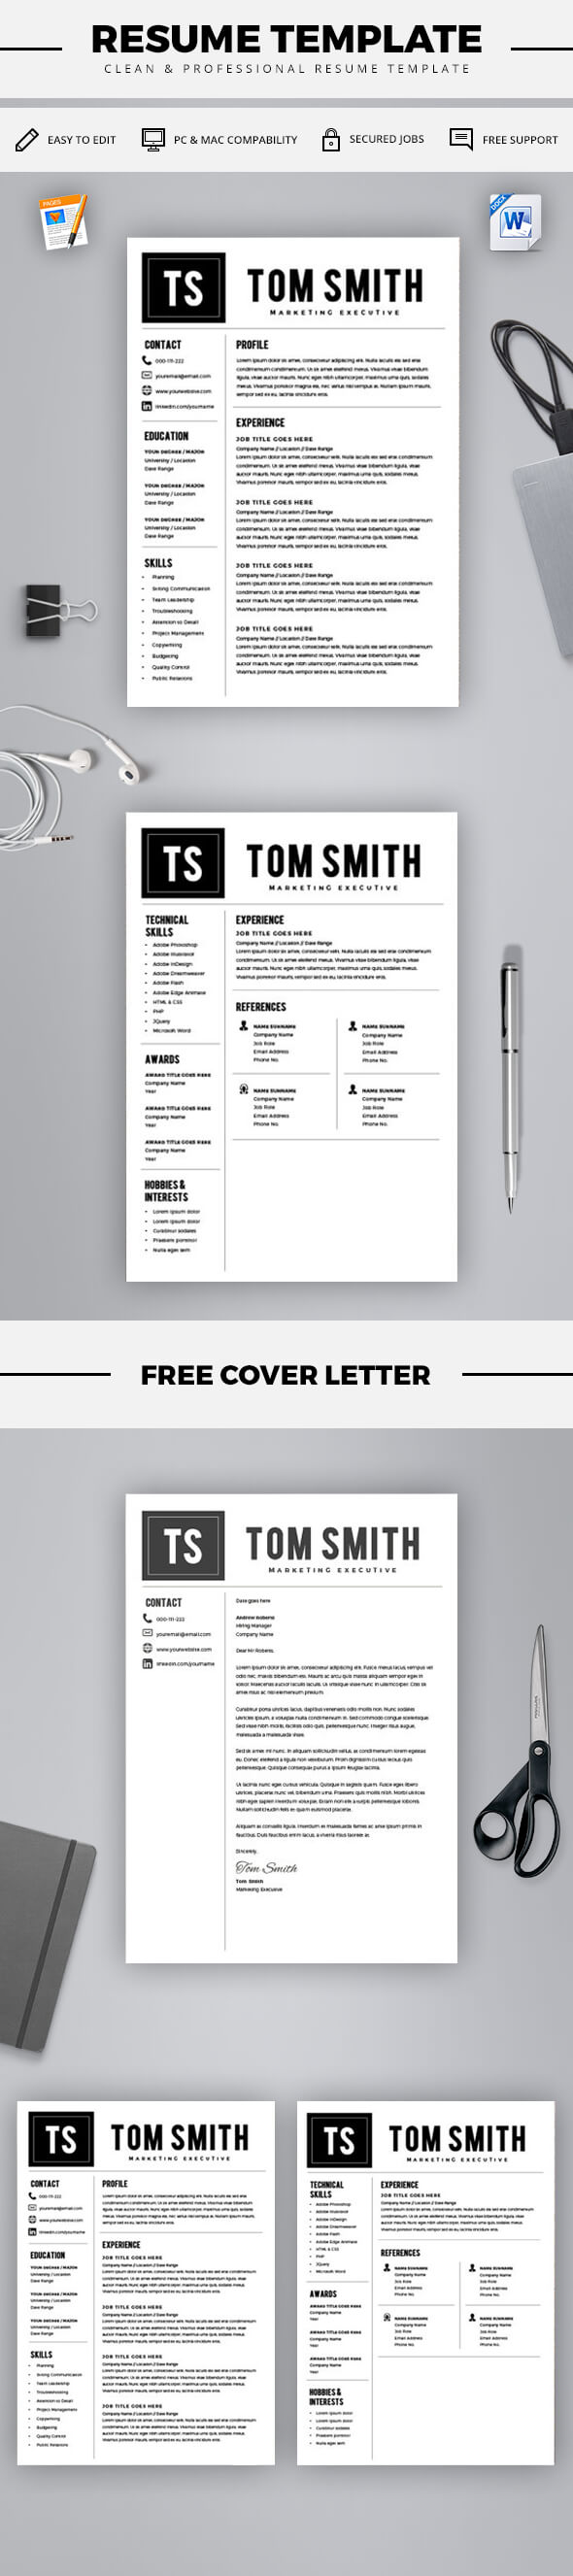 Free Cover Letter For Resume Delectable Modern Resume Template  Free Cover Letter  Cv Template  Ms Word .